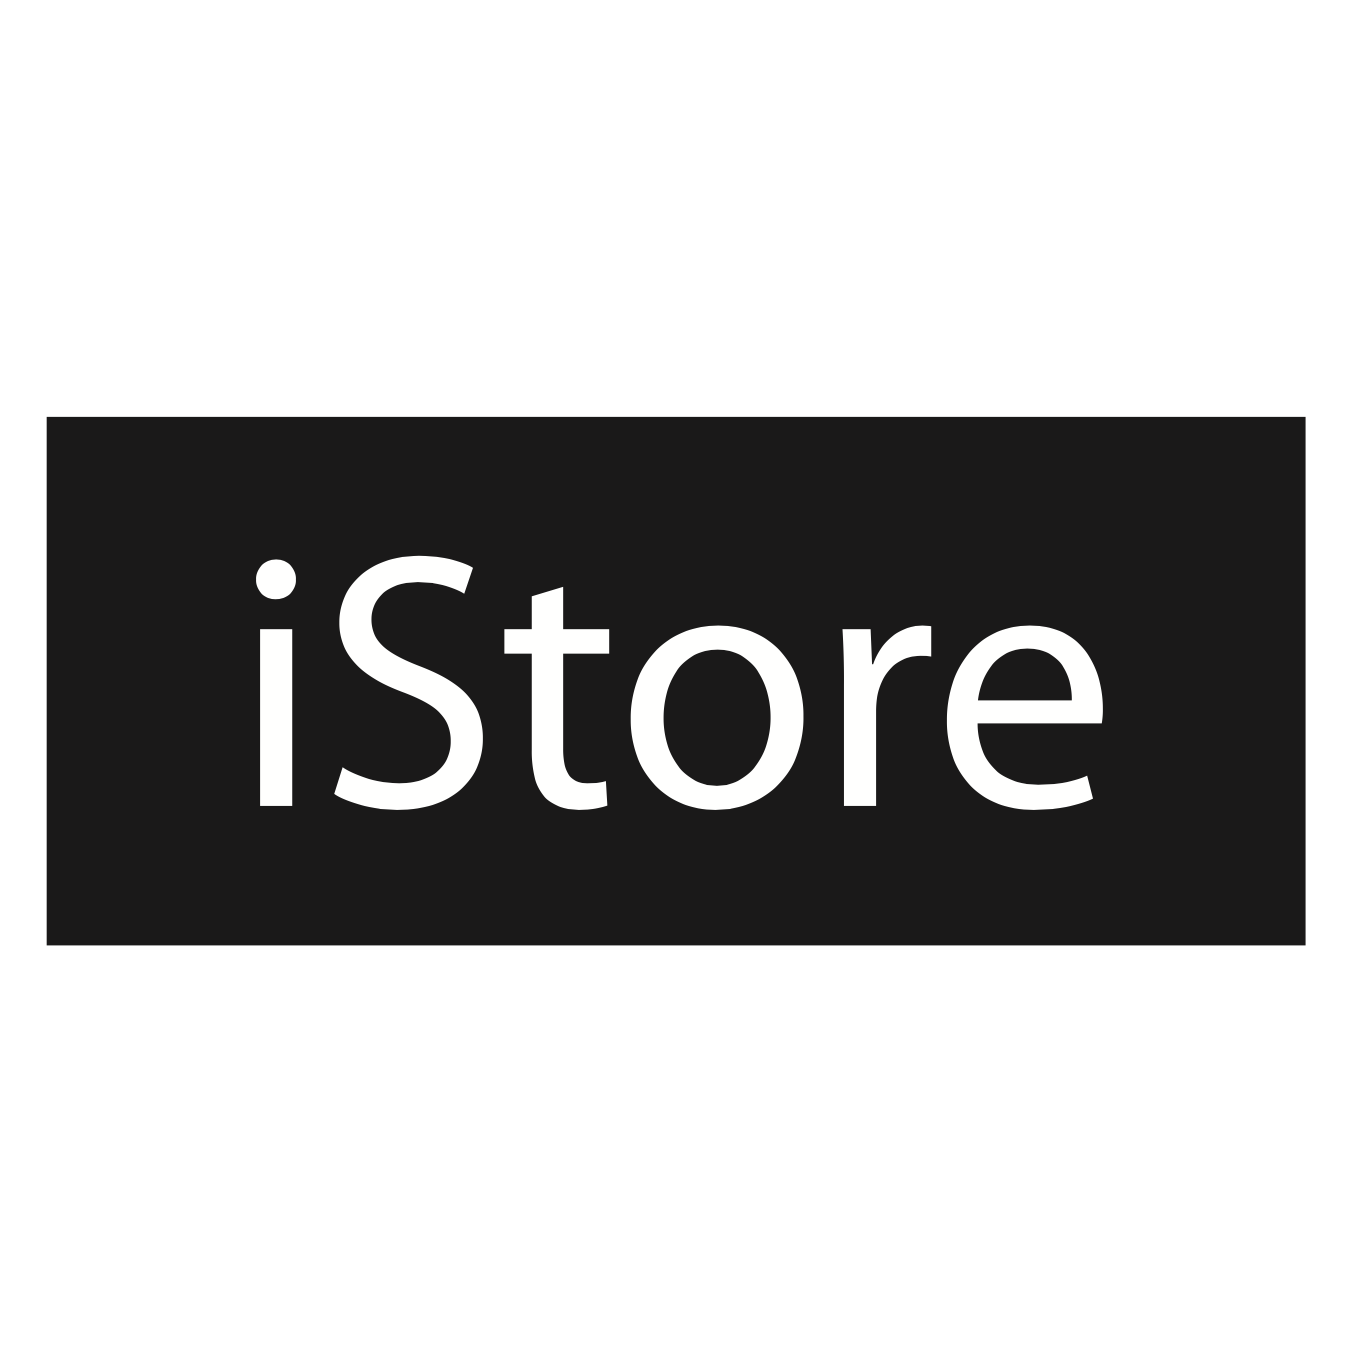 iStore / Scosche Ligtning cable 2m - White